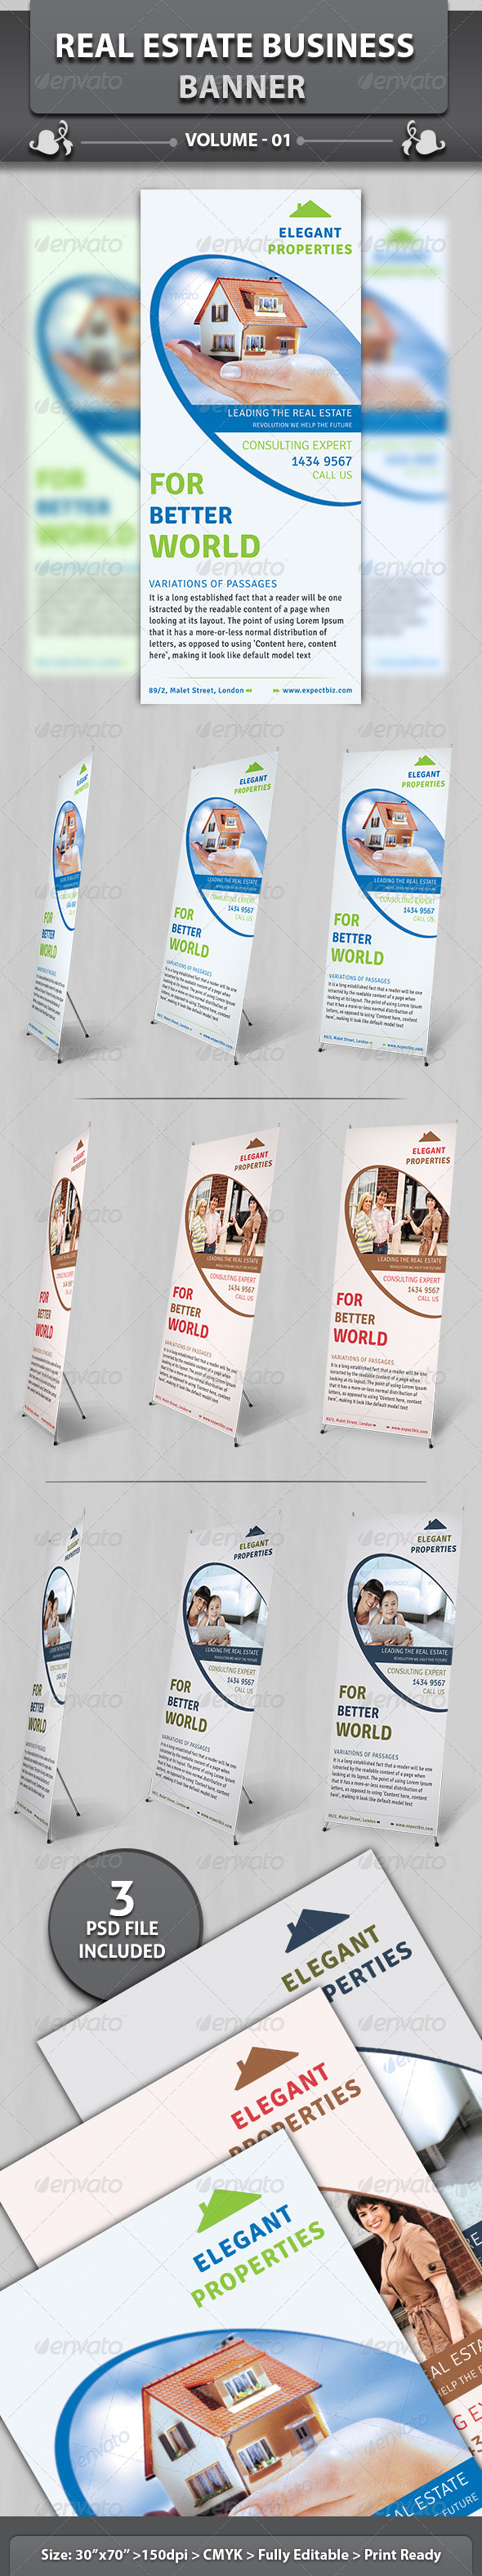 Real Estate Business Banner Volume 2